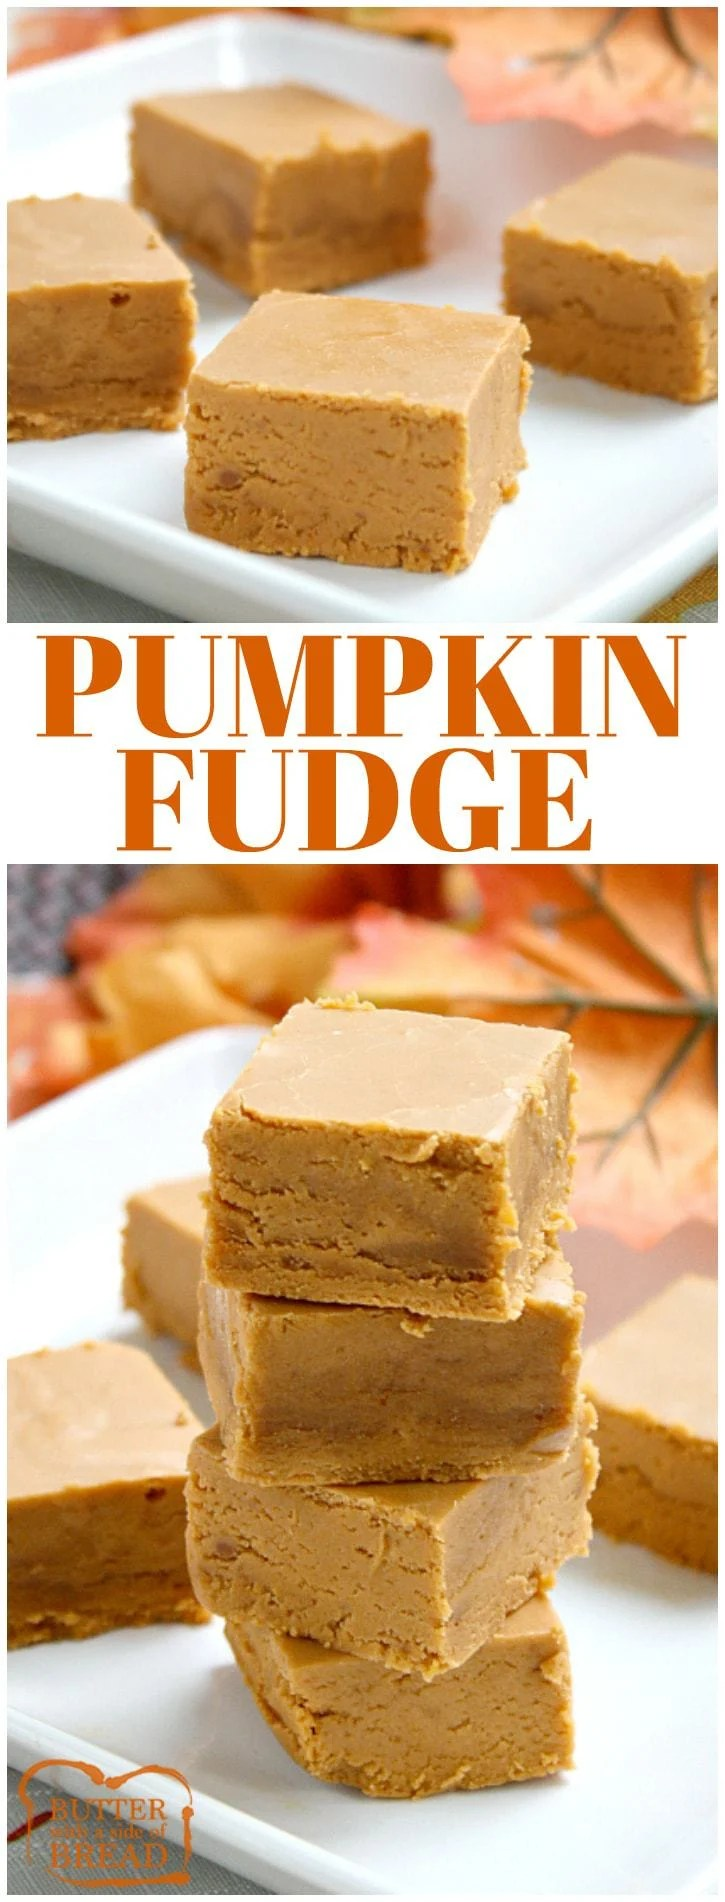 Pumpkin Fudge is made with pumpkin, cinnamon chips, marshmallow creme and a few other basic ingredients. One of our favorite fall candy recipes!